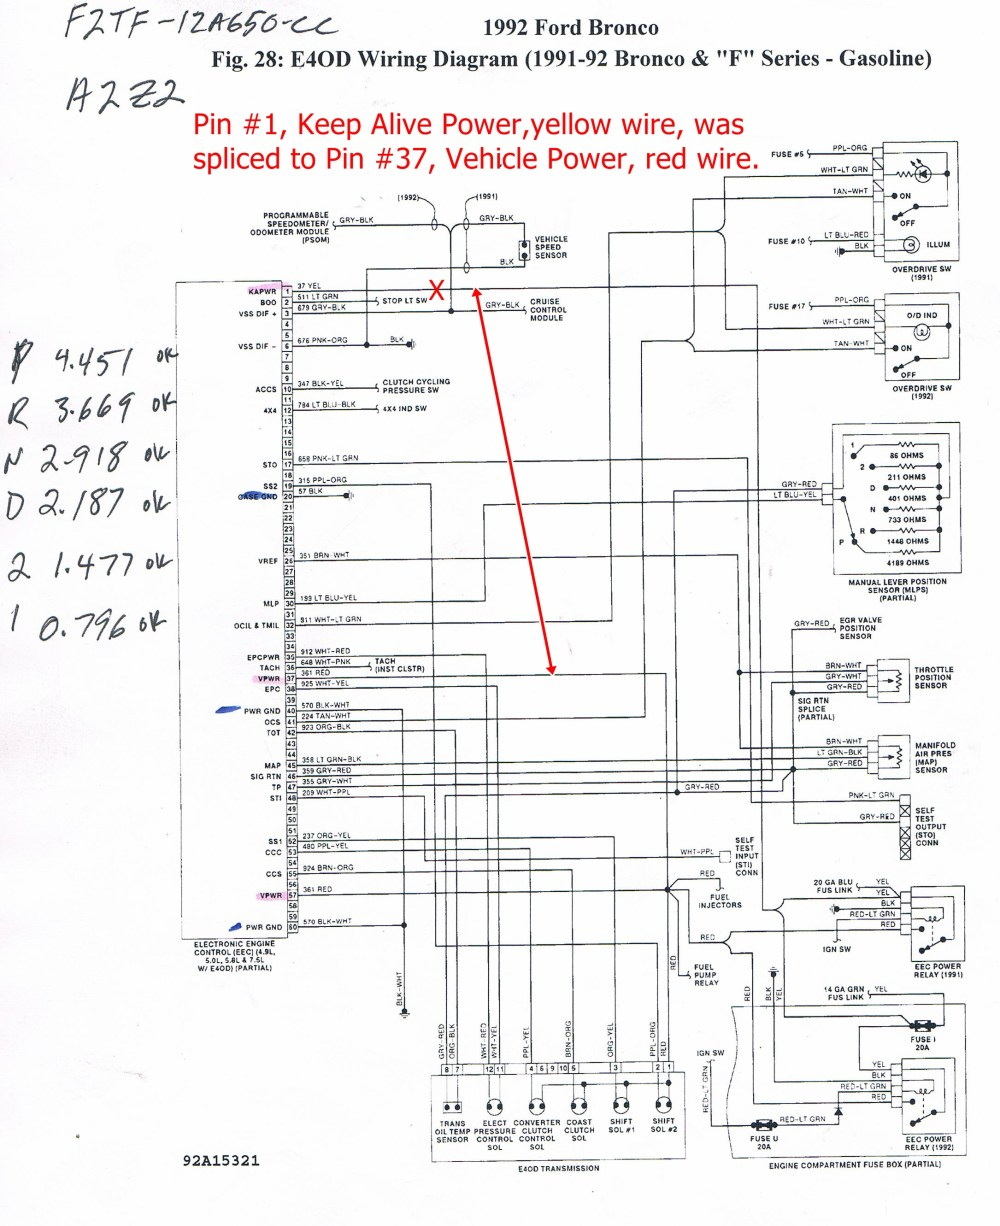 medium resolution of 94 trans wiring diagram wiring diagram detailed 94 accord ignition diagram 94 accord transmission wiring diagrams